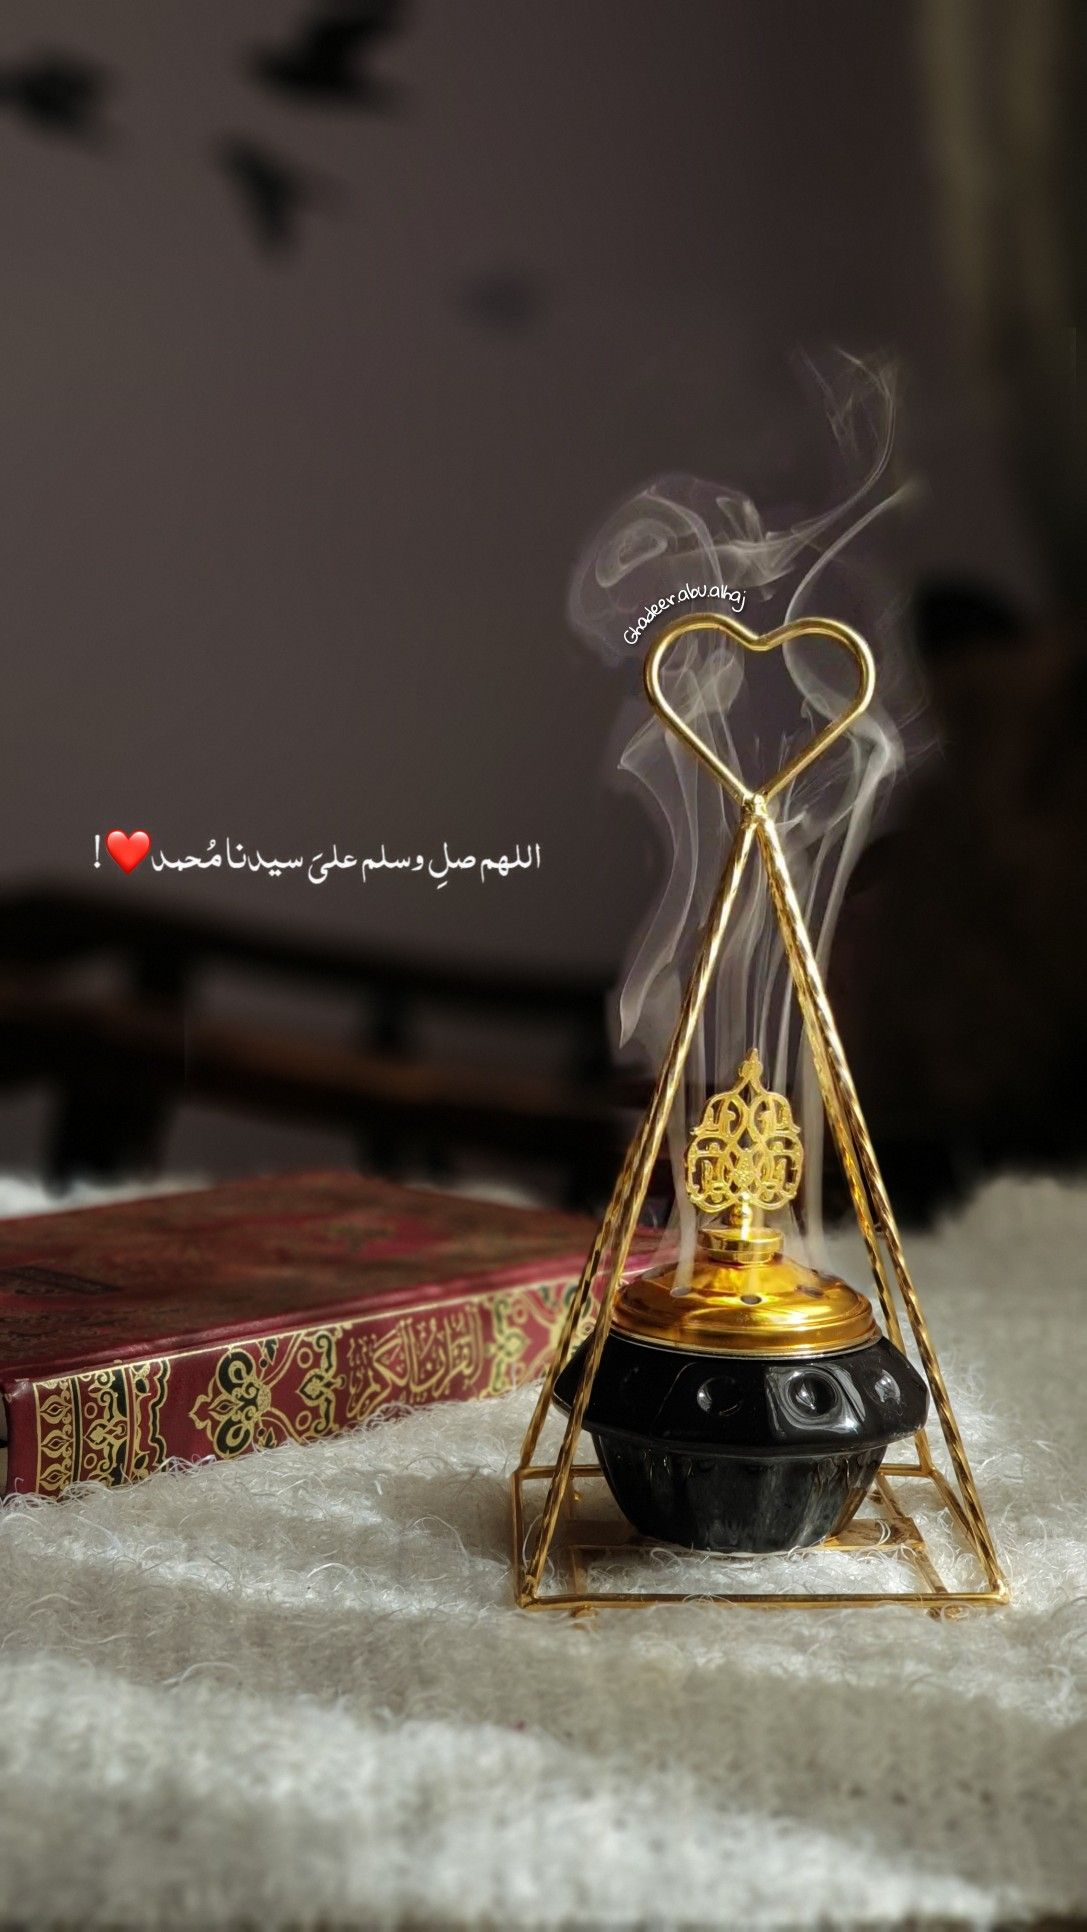 Pin By The Moon On منشوراتي المحفوظة Beautiful Quran Quotes Coffee Love Quotes Beautiful Arabic Words